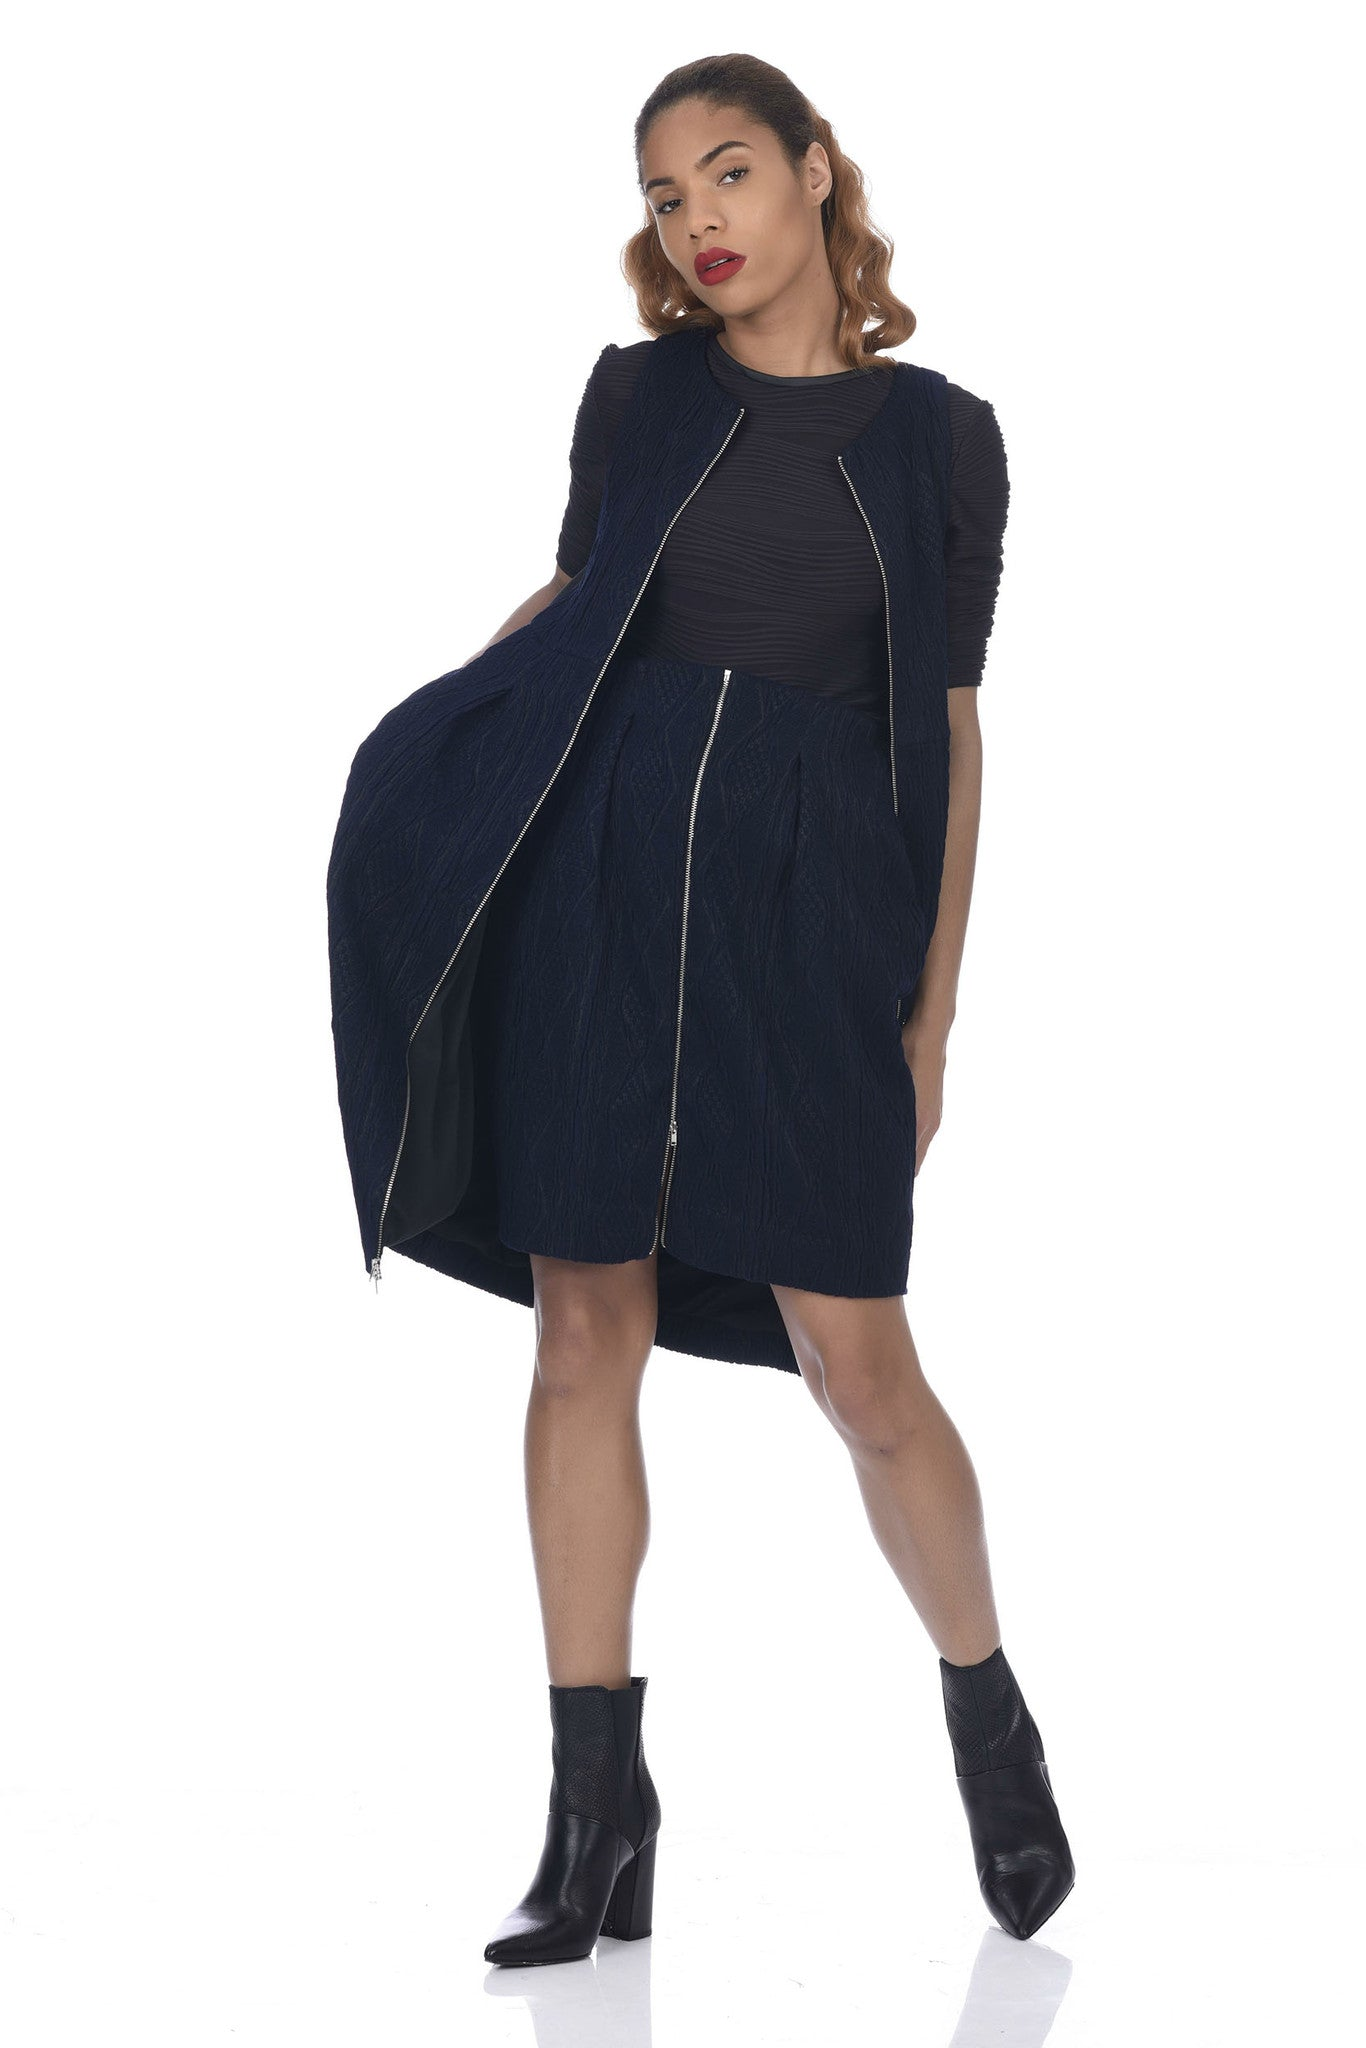 Navy 2-Way Zipper Tulip-Skirt Cable Knit Vest